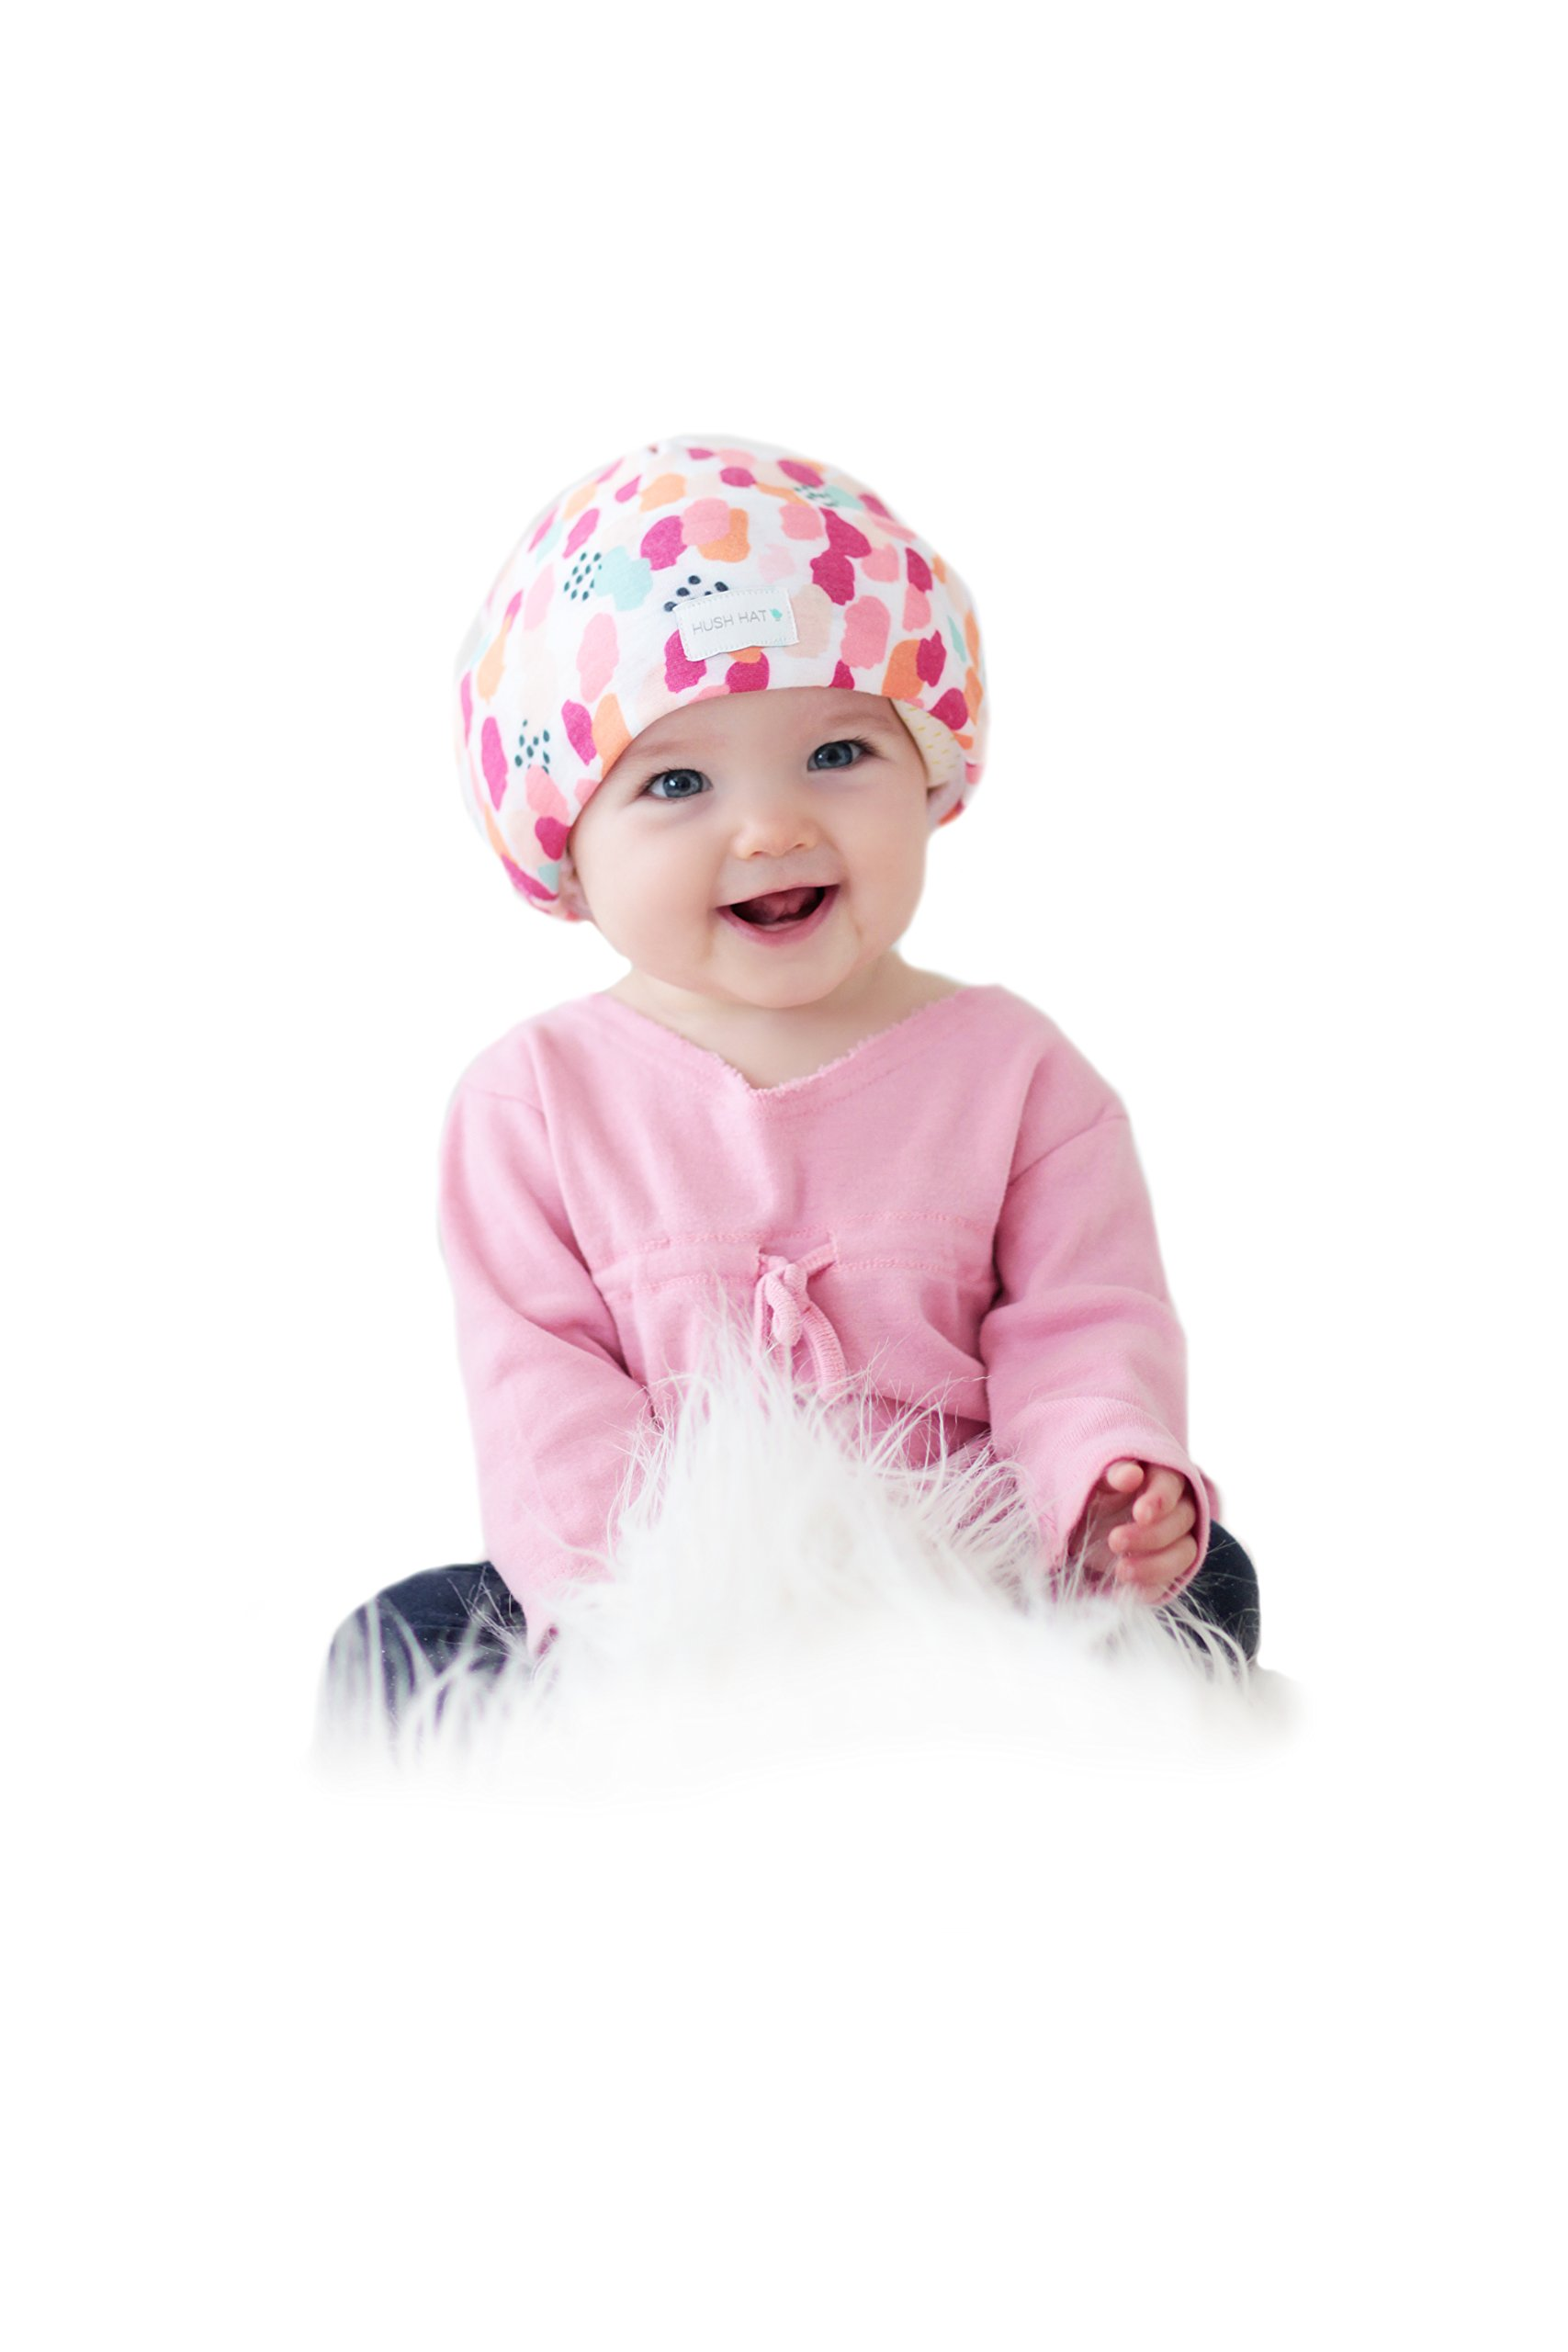 Hush Baby Hat with SoftSound Technology and Medical Grade Sound Absorbing Foam, Sherbet, Medium by HUSH Baby